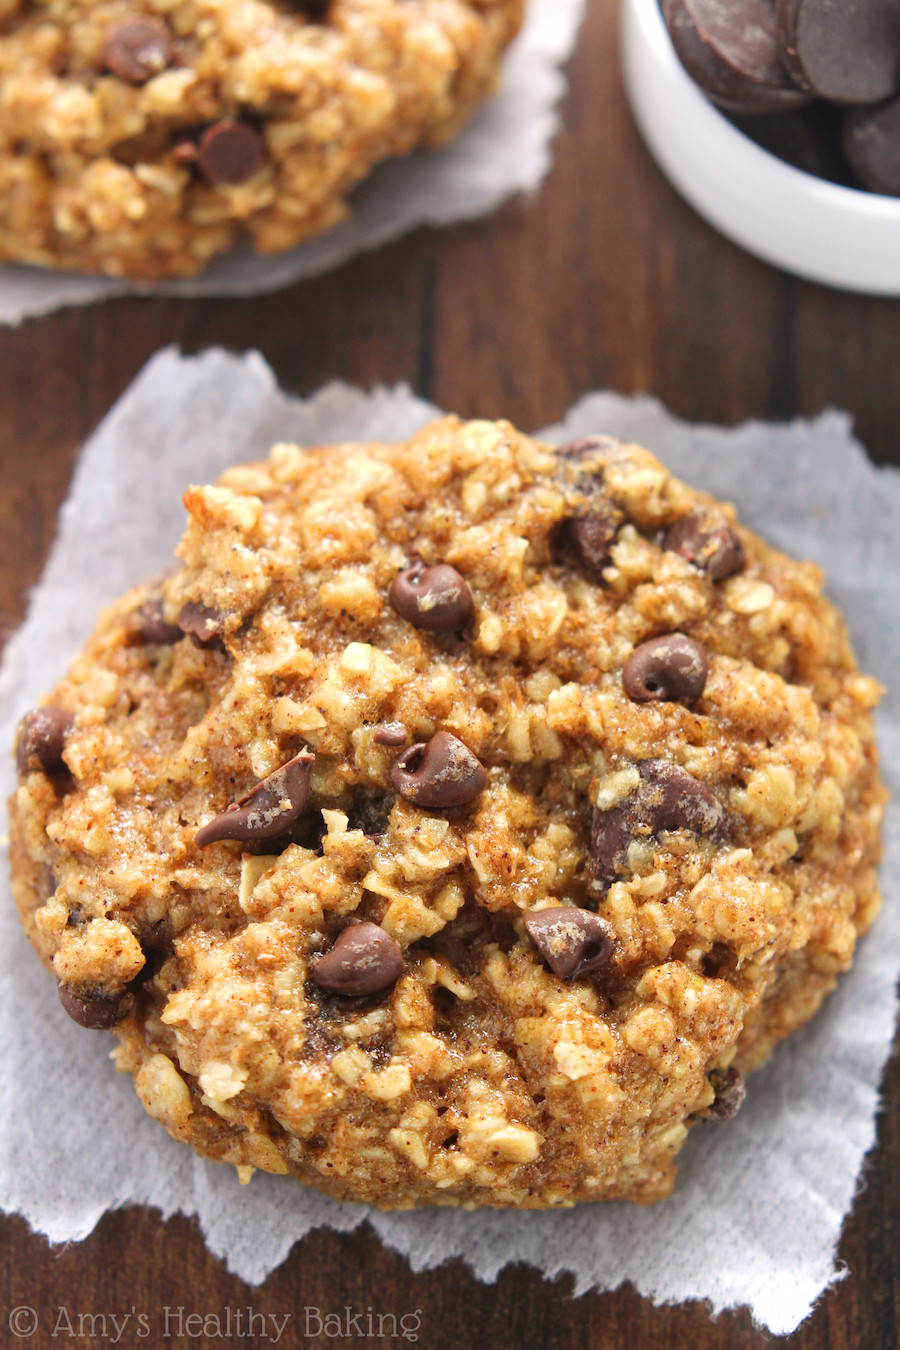 Healthy Oatmeal Chocolate Chip Cookies Applesauce  Chocolate Chip Banana Bread Oatmeal Cookies